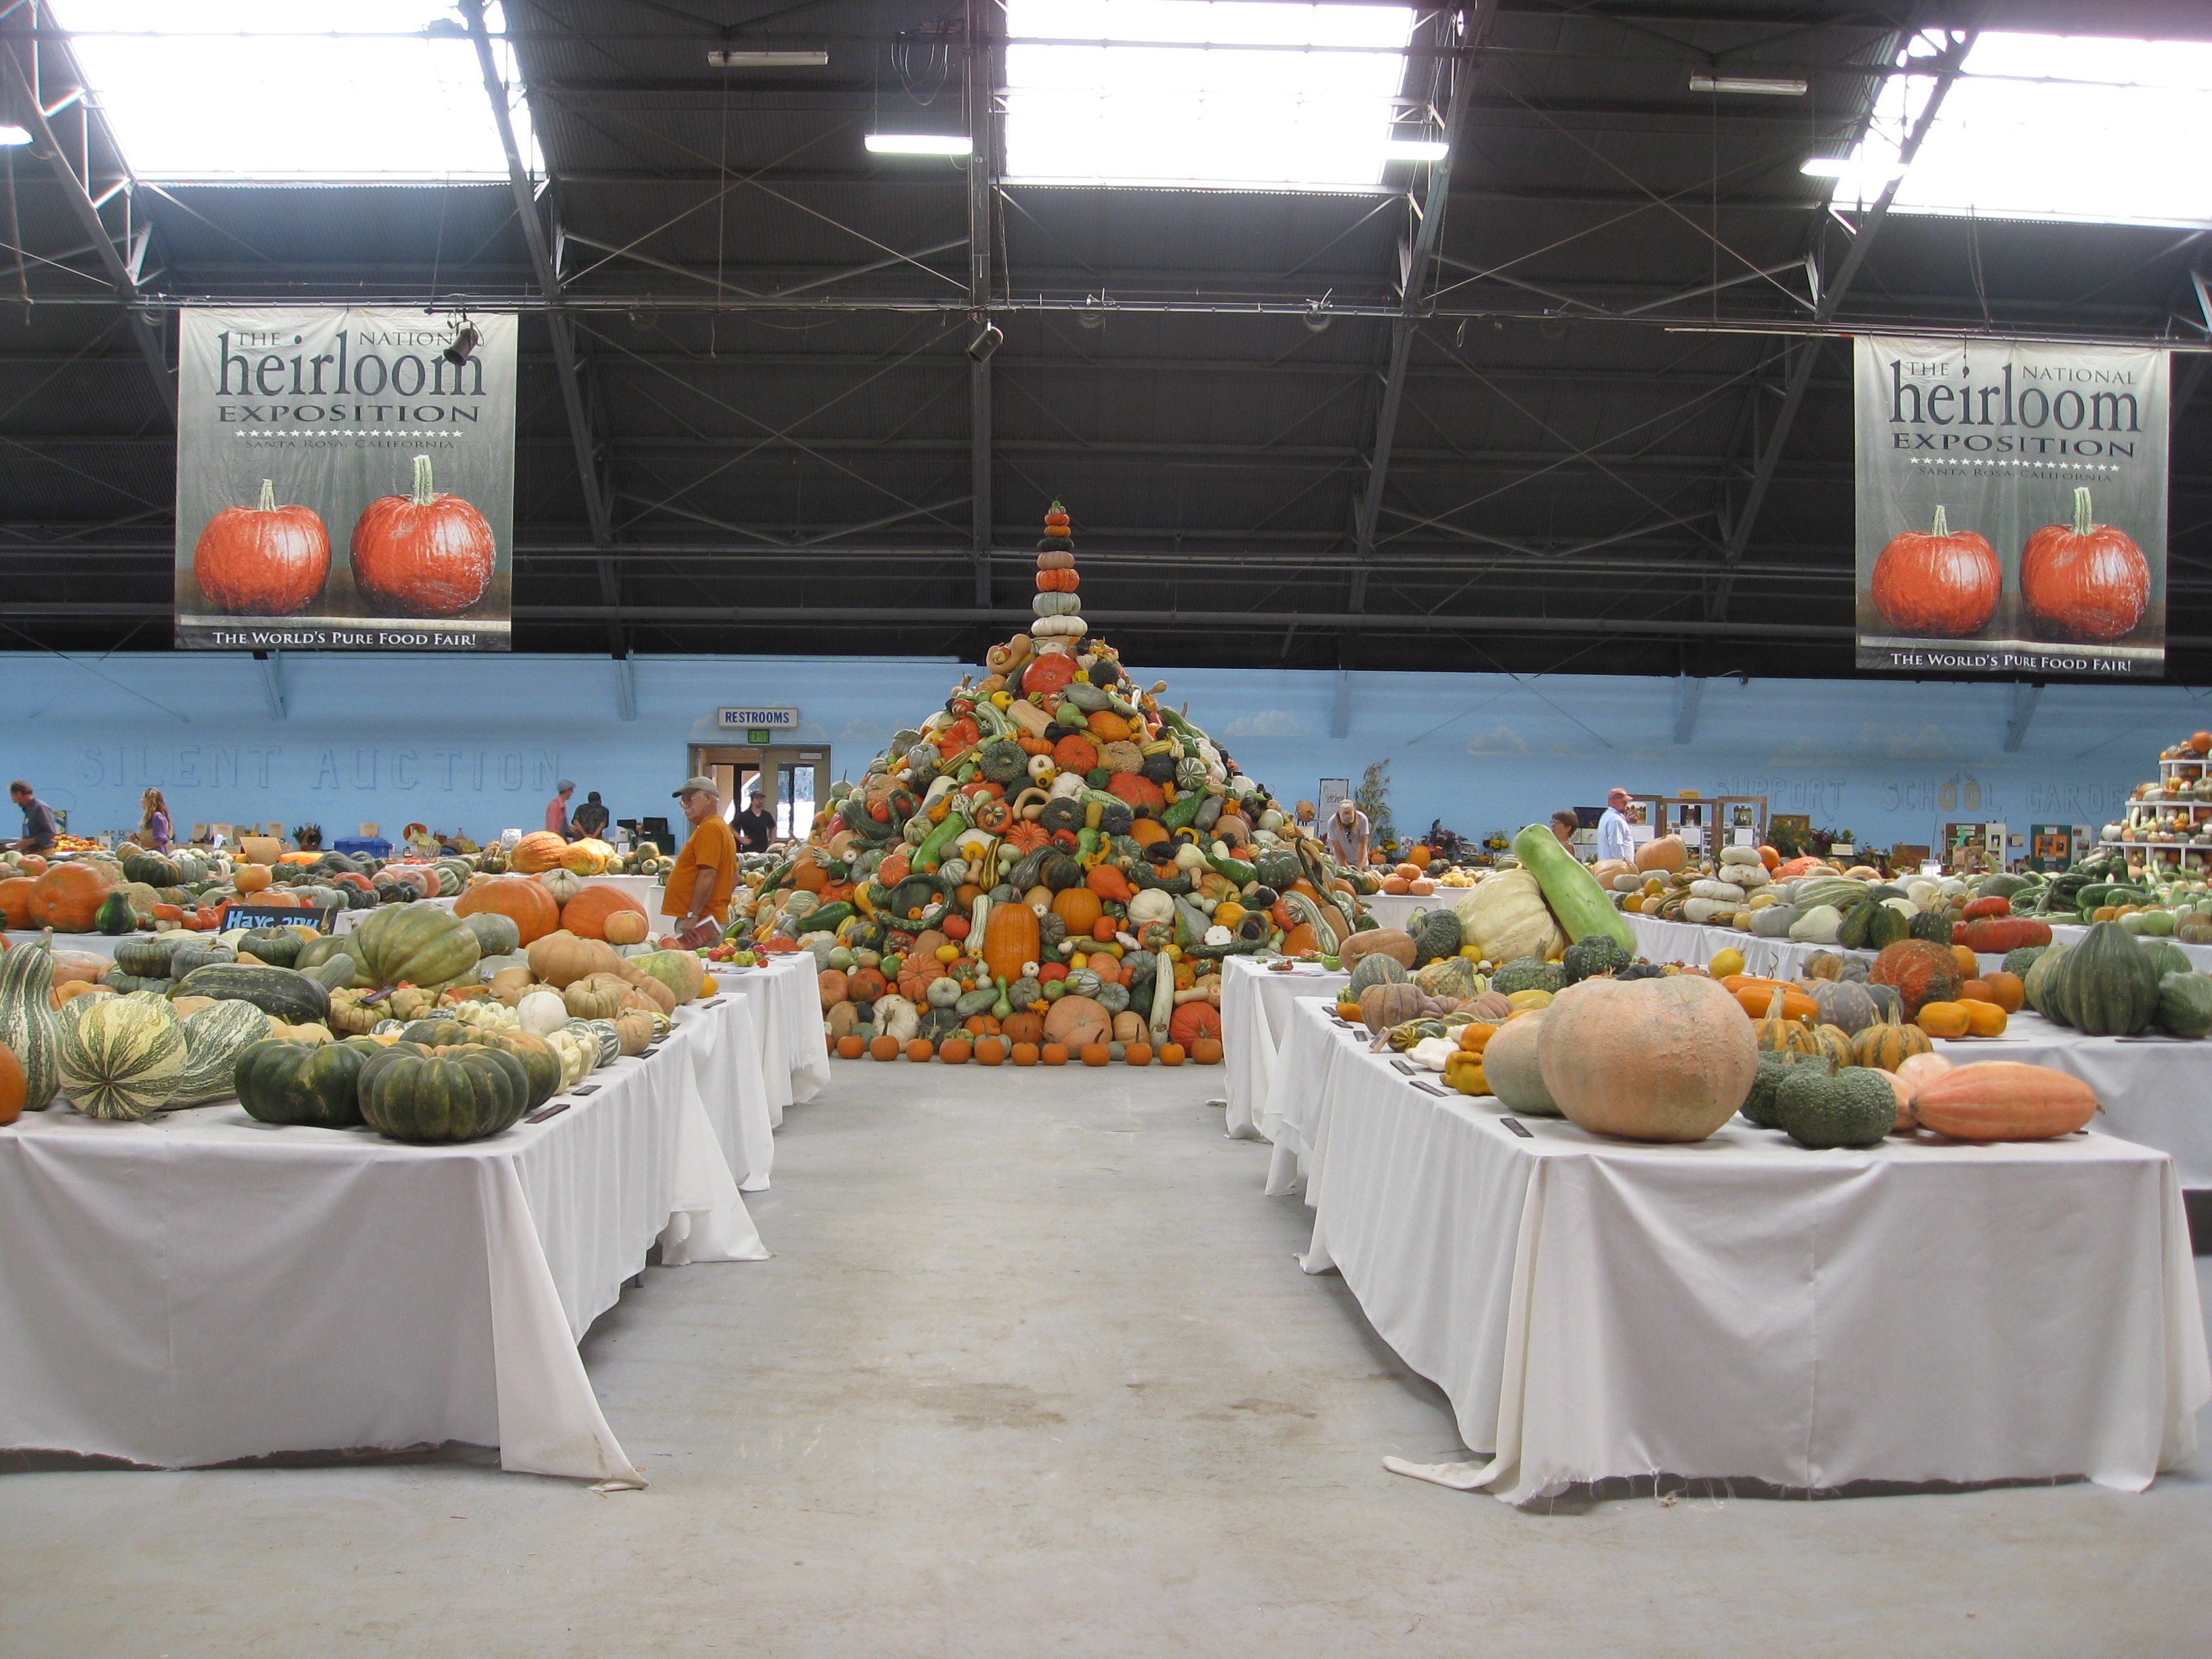 Hall of Flowers at the Heirloom Expo